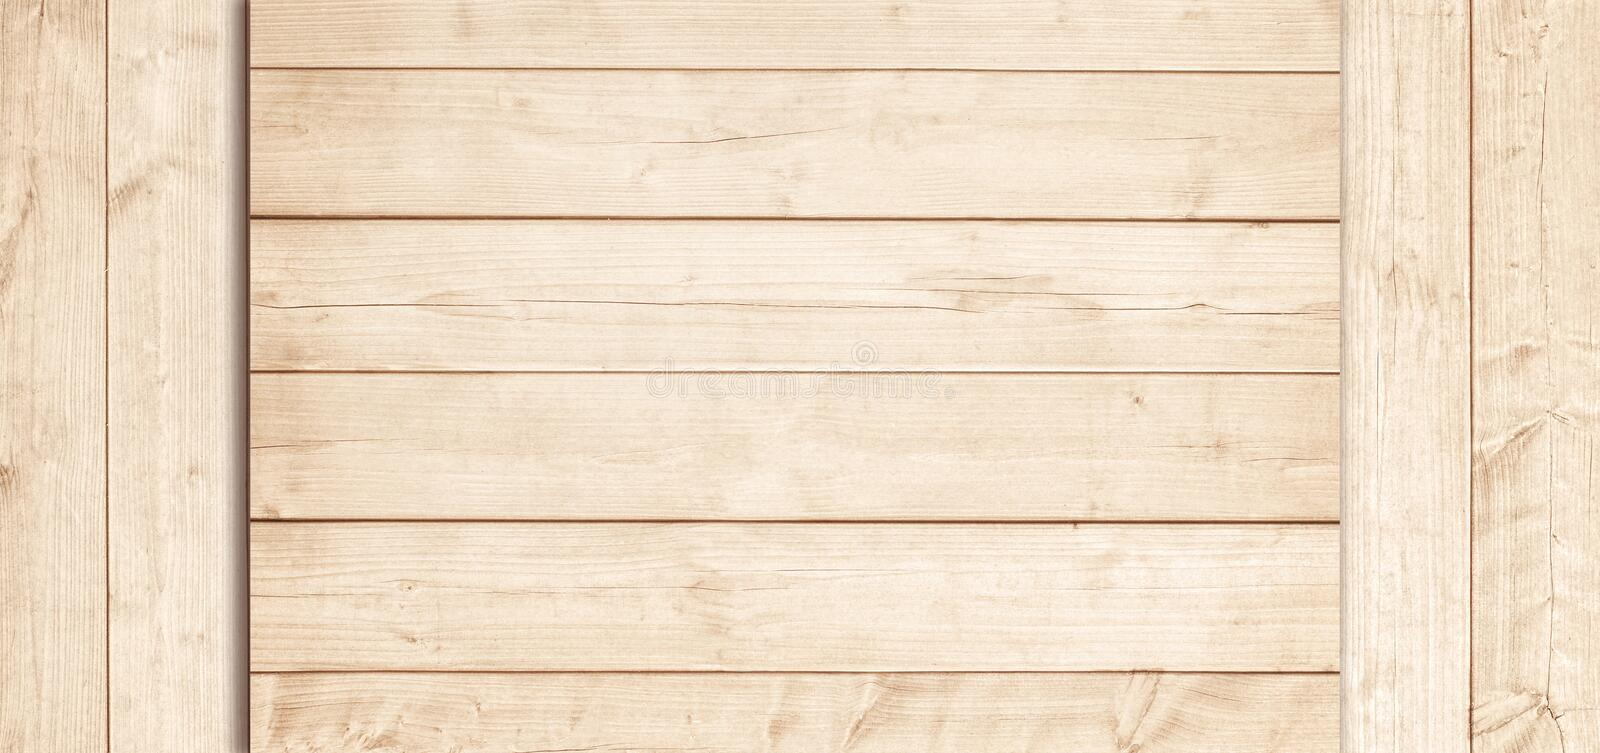 Light brown wooden planks, tabletop or floor surface. Wood texture. Light brown wooden planks, tabletop or floor surface. Wood texture stock photos